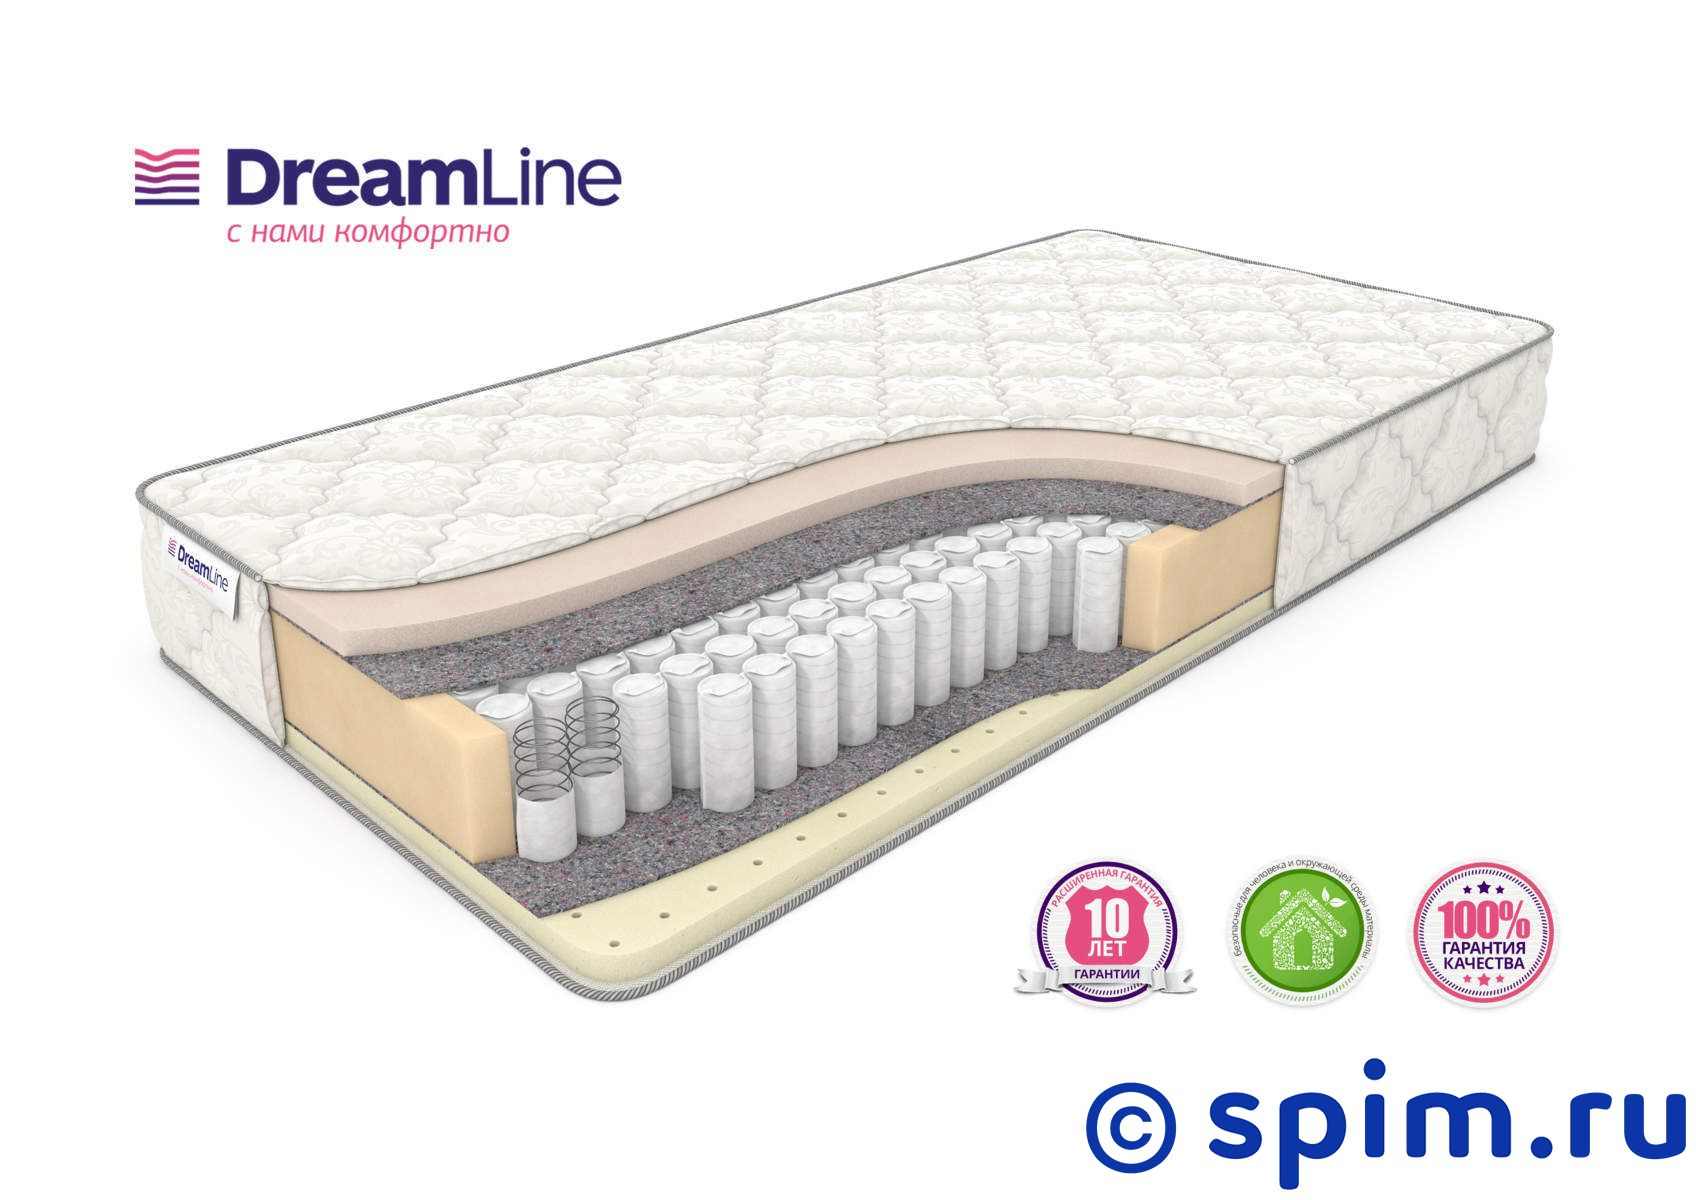 Матрас DreamLine Memory Sleep Tfk 120х190 см